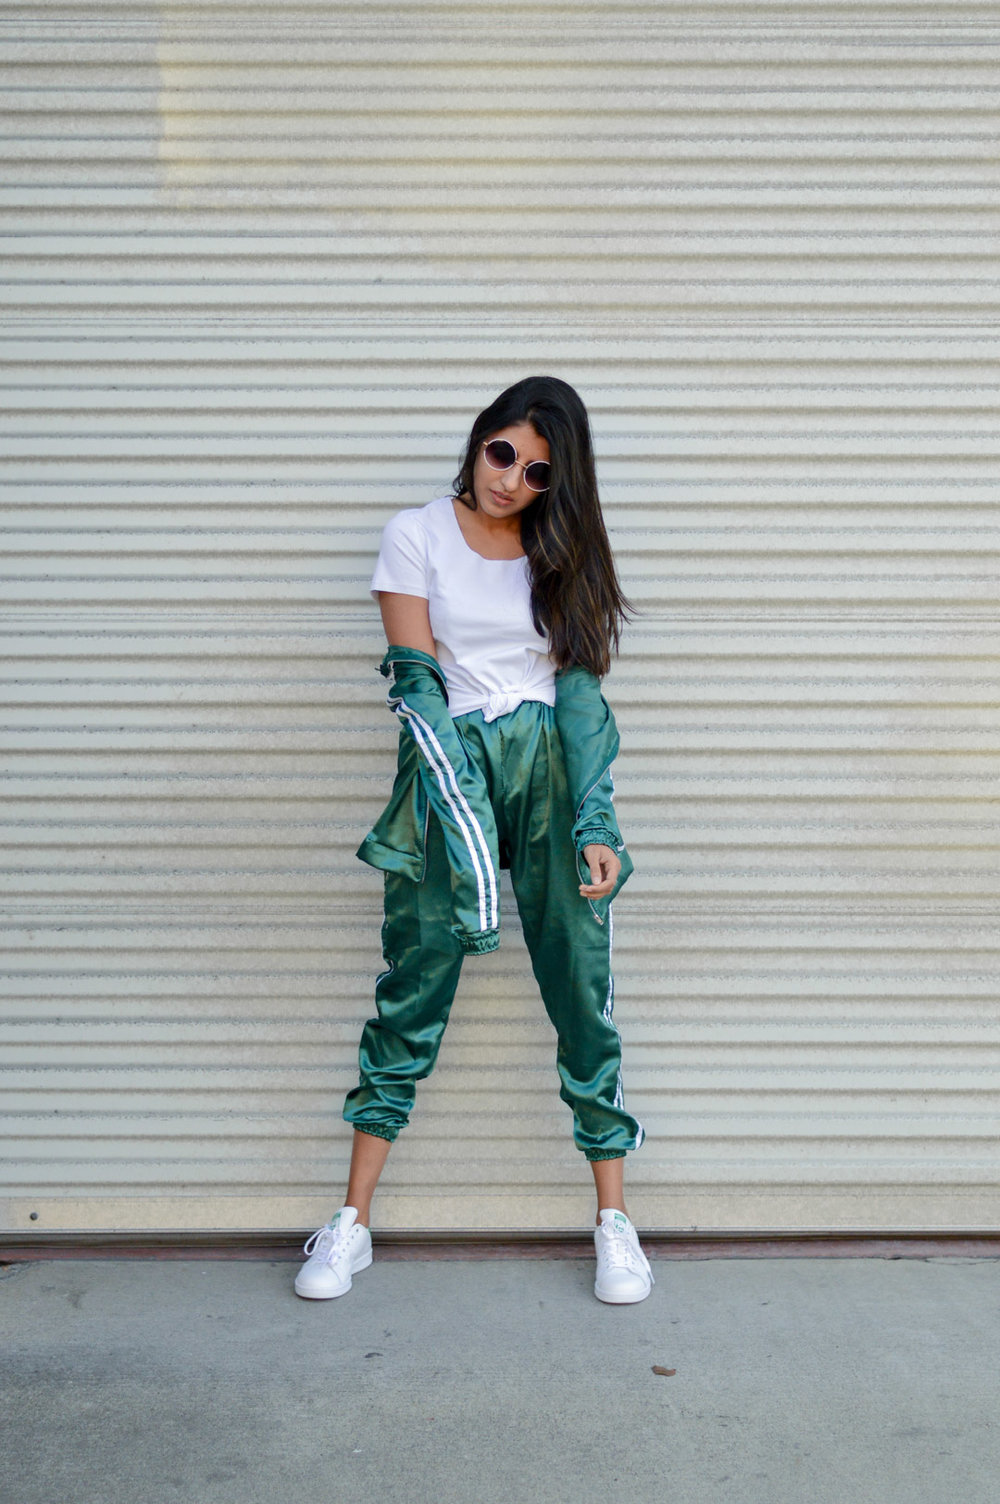 tracksuit-satin-green-sporty-chic-black-friday-shopping 1